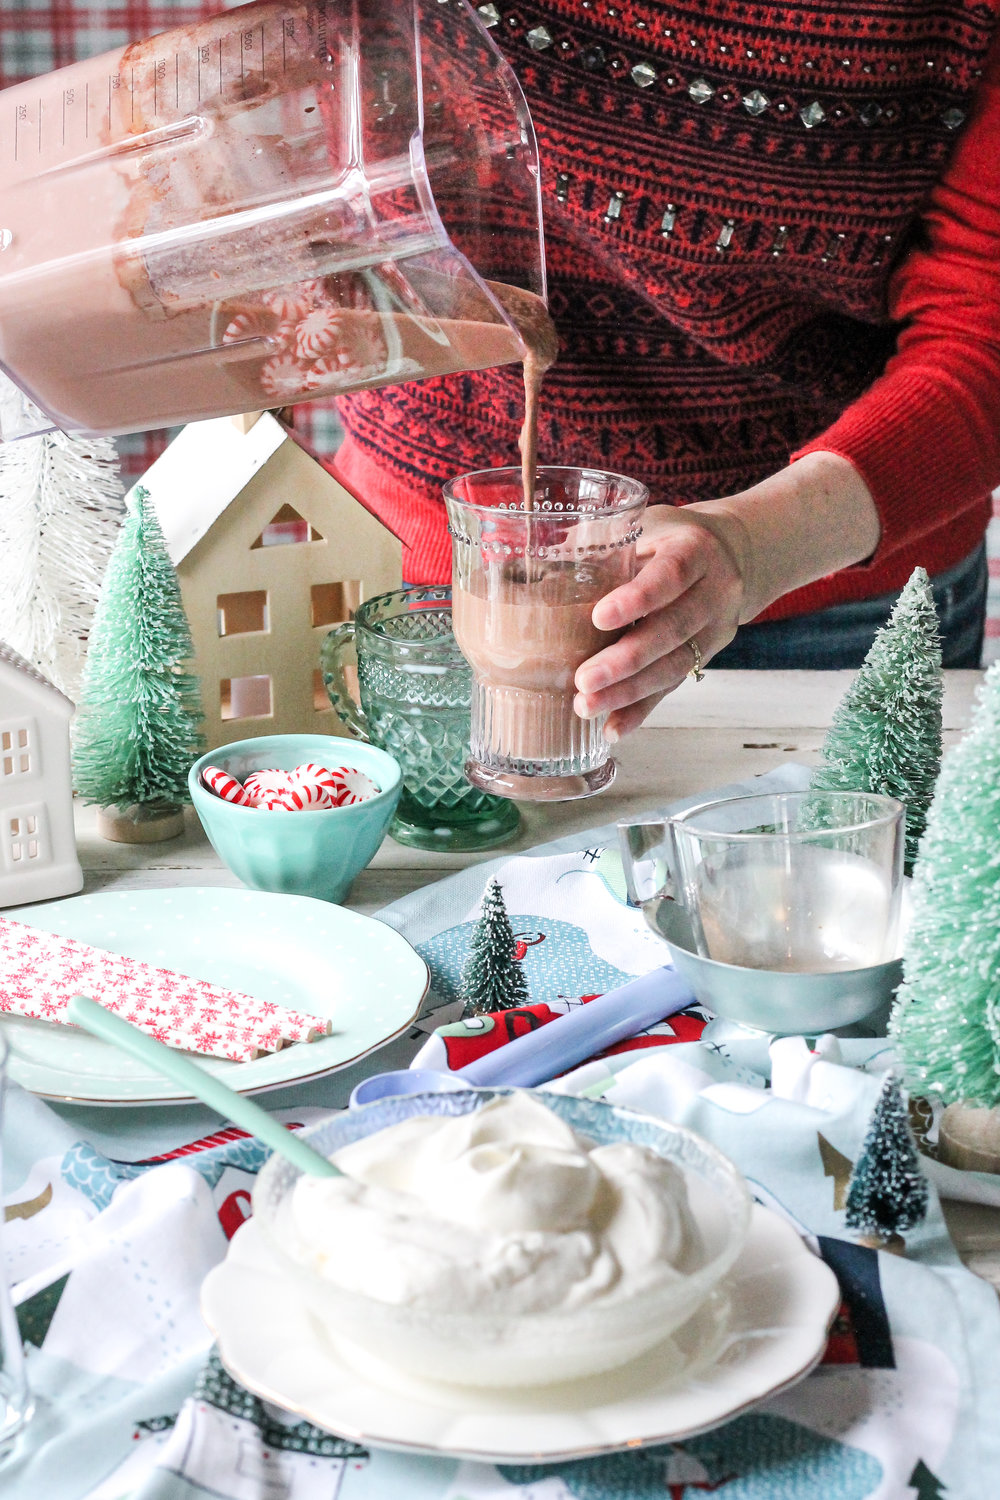 Double Chocolate Peppermint Malts are the perfect way to make a family movie night or Christmas-tree decorating party extra special!  Find the recipe on www.pedanticfoodie.com!